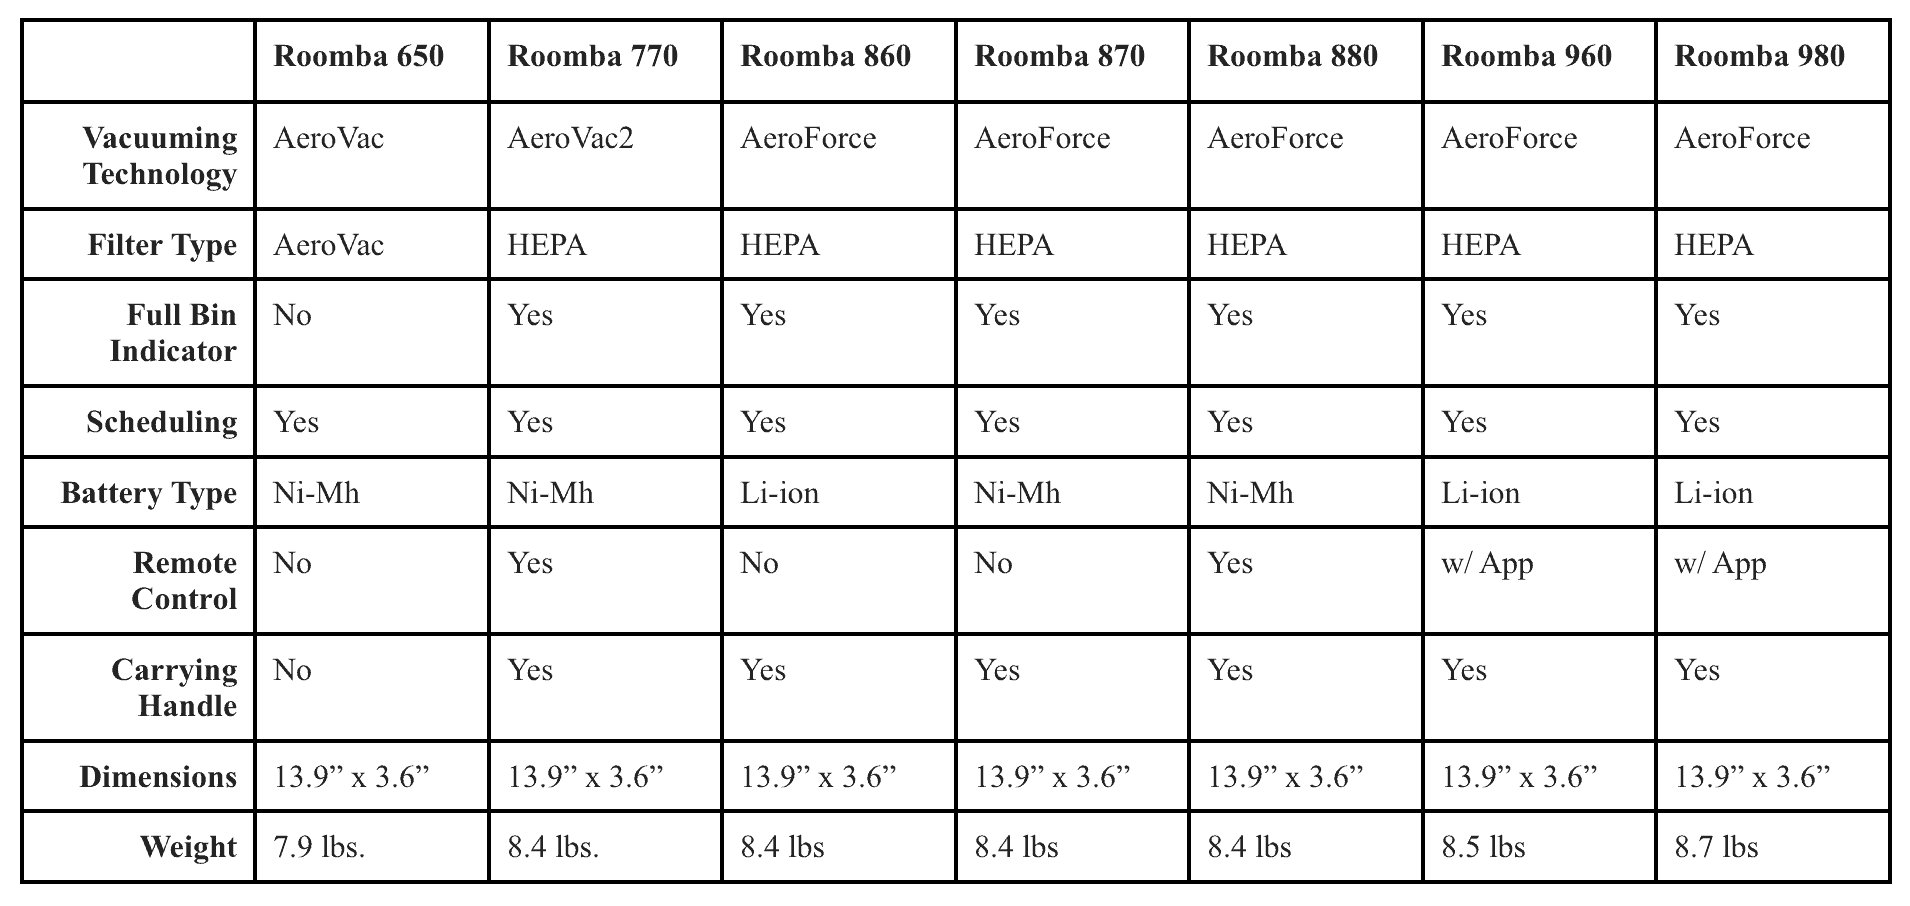 Roomba 860 Comparative Chart